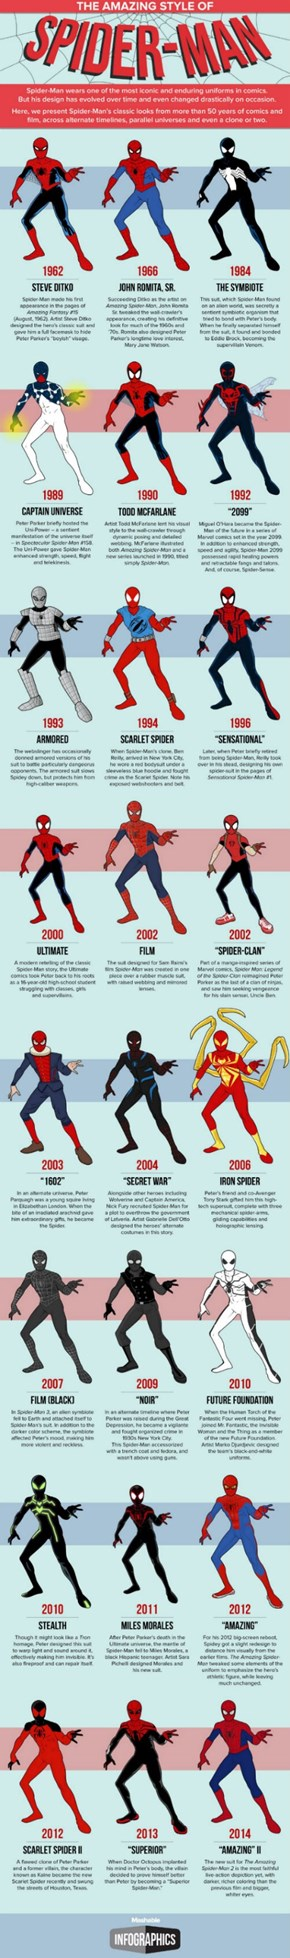 The History of Spider-Man Costumes